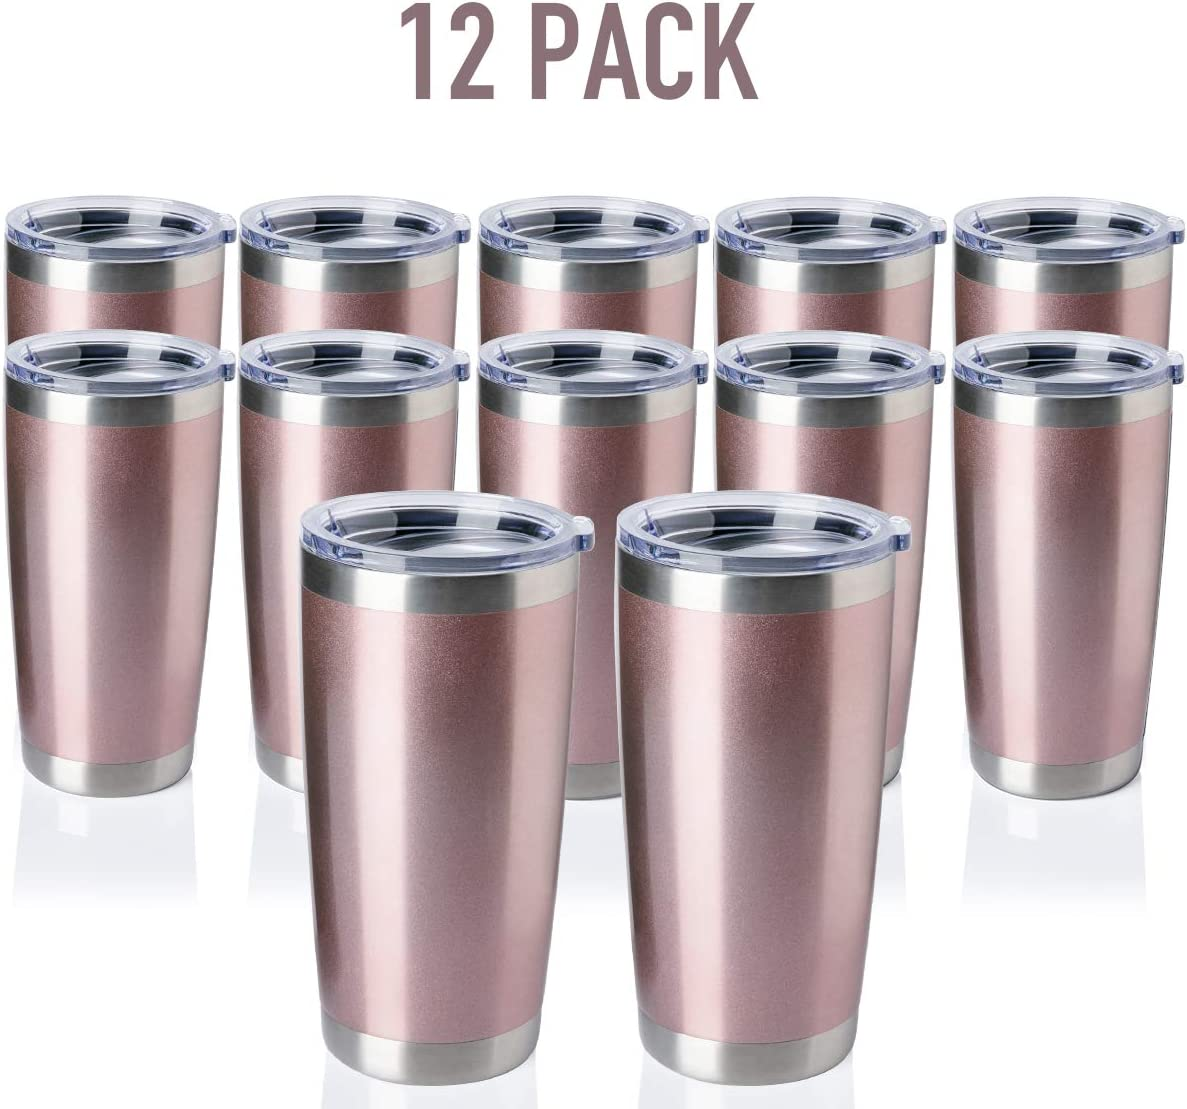 TDYDDYU 12 pack 20 OZ Double Wall Stainless Steel Vacuum Insulated Tumbler Coffee Travel Mug With Lid, Durable Powder Coated Insulated Coffee Cup for Cold & Hot Drinks (Rose Gold, 12 pack)